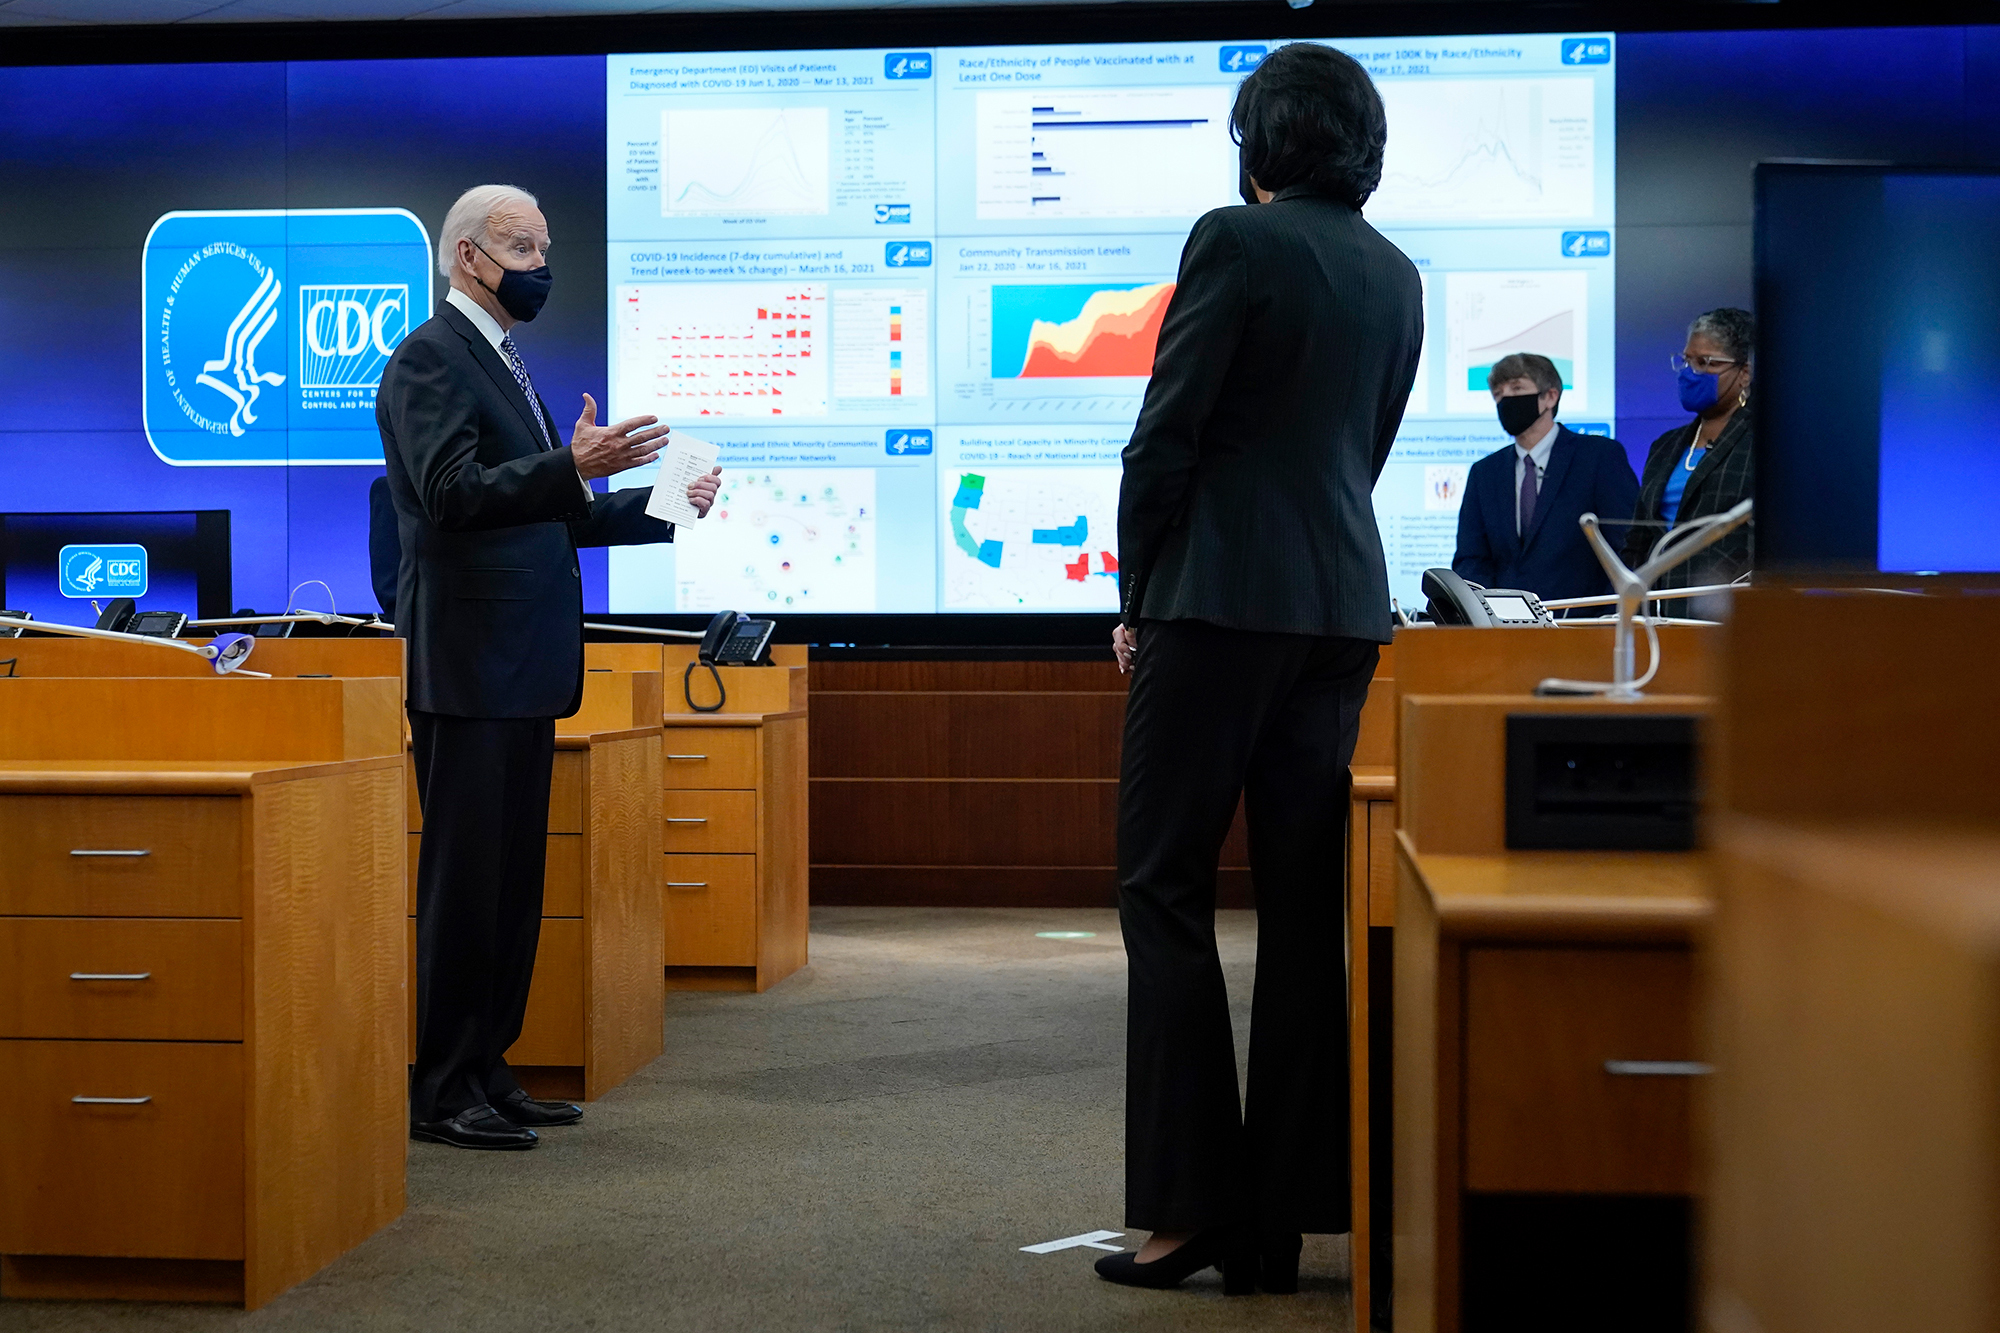 President Joe Biden speaks during a COVID-19 briefing at CDC headquarters in Atlanta, along with Dr. Rochelle Walensky. The administration has backed up public health guidance from the agency.